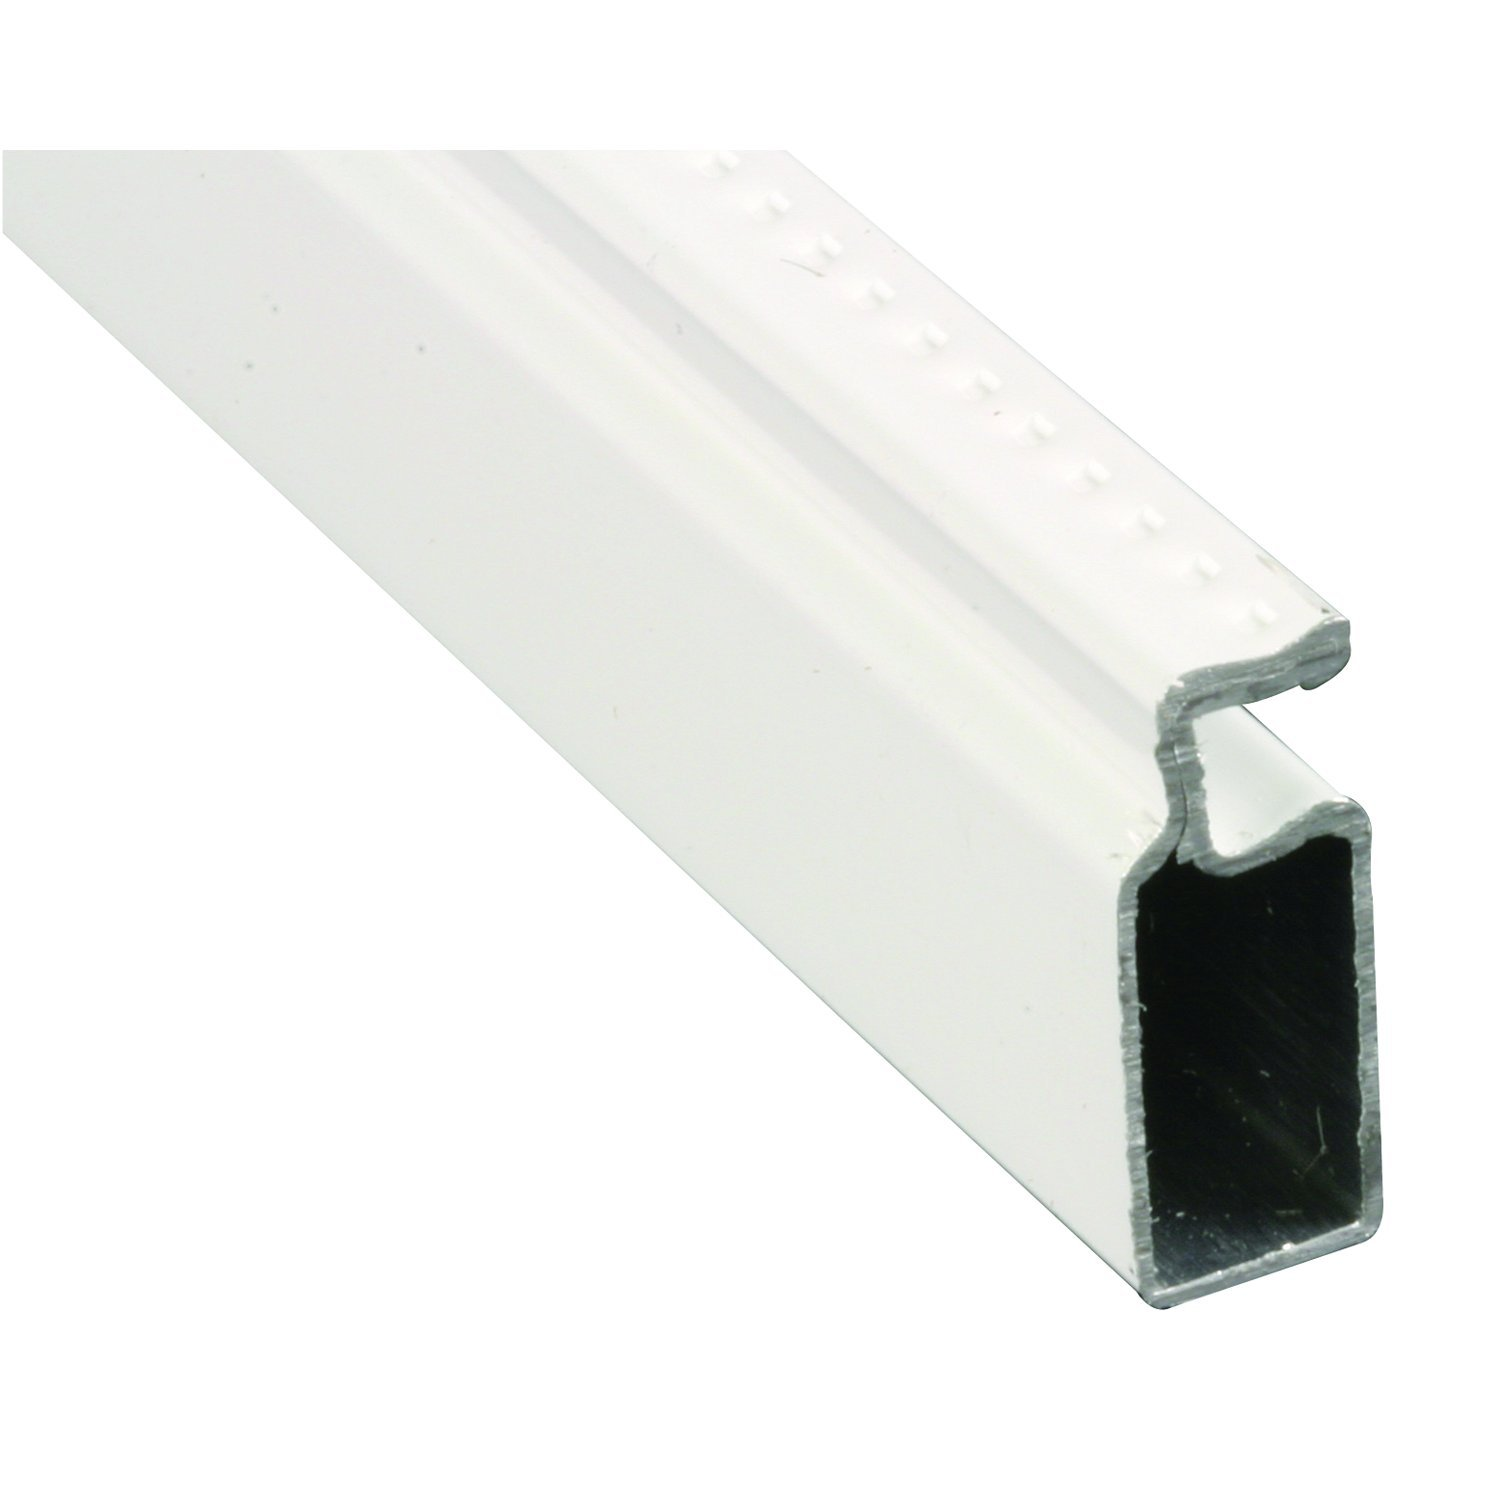 Prime-Line MP14074 Aluminum Screen Frame, 5/16 in. x 3/4 in. x 72 in., White Finish, (Box of 20)